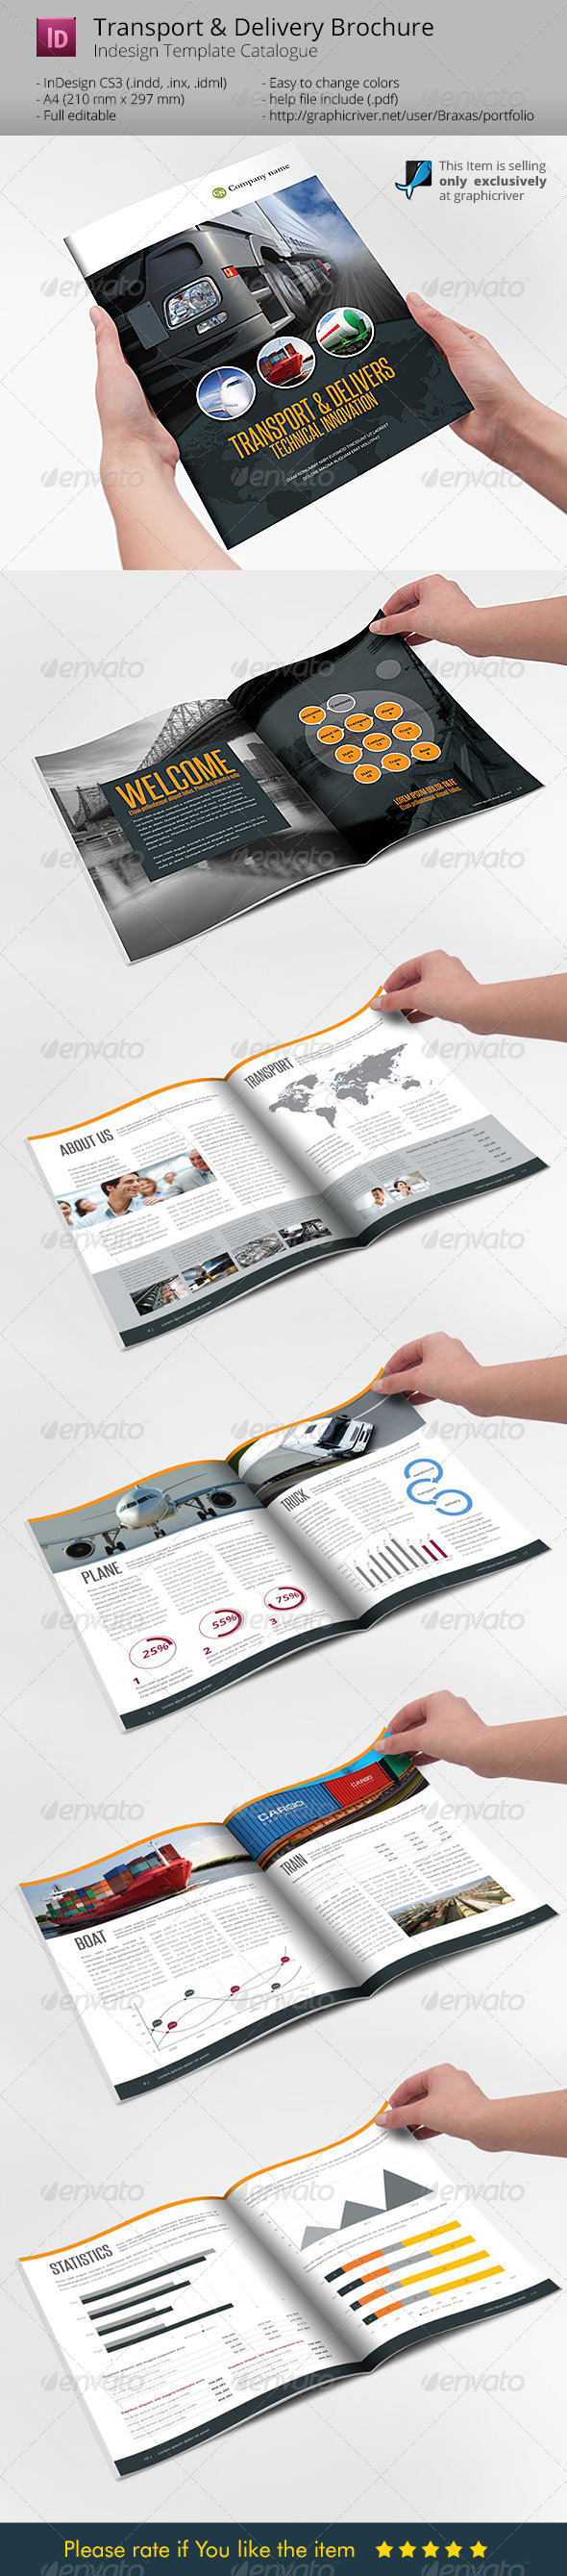 GraphicRiver Transport & Delivery Indesign Template Brochure 6214122